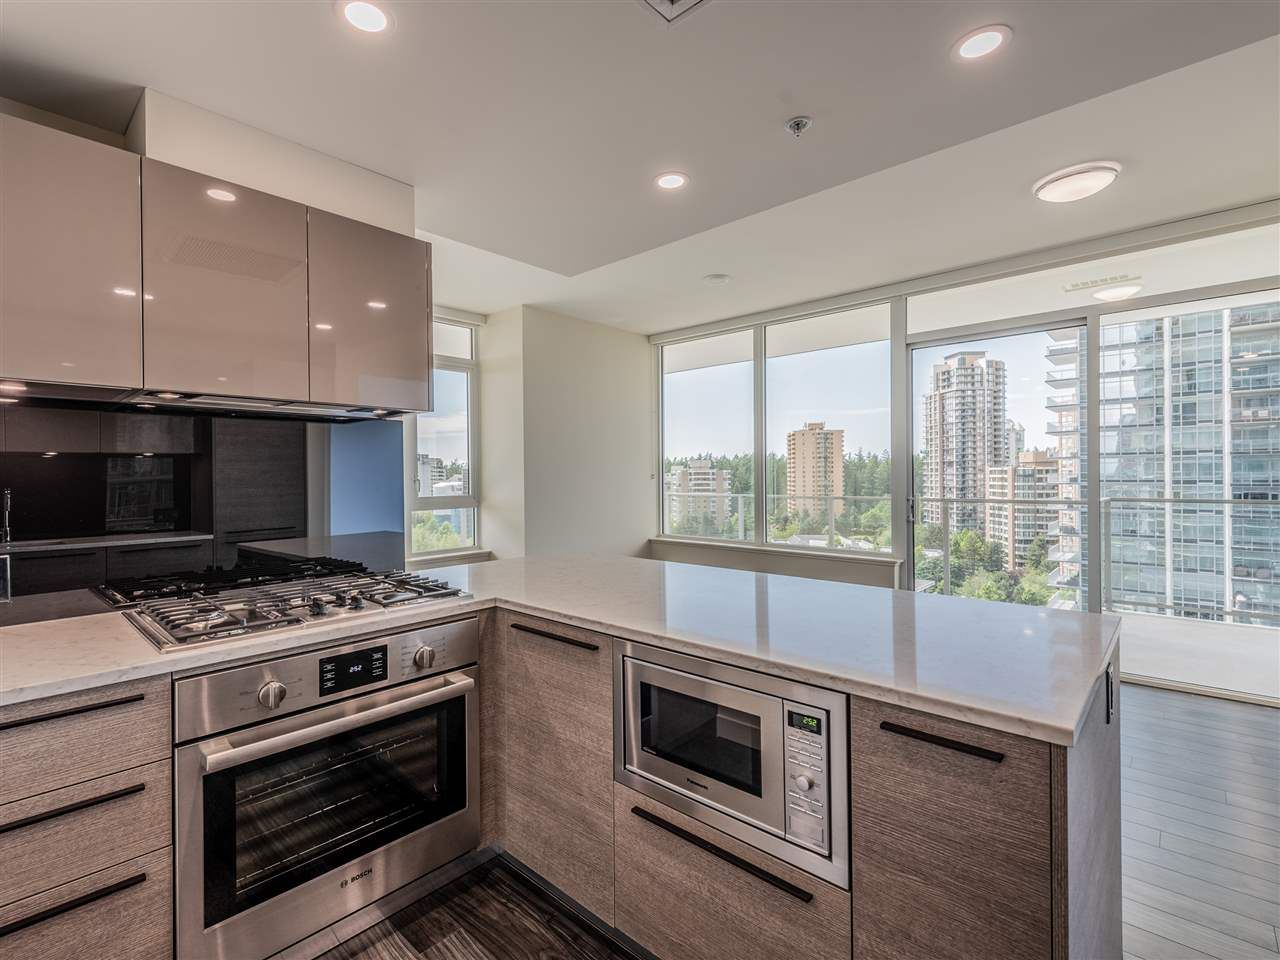 """Main Photo: 1106 6383 MCKAY Avenue in Burnaby: Metrotown Condo for sale in """"Gold House North Tower"""" (Burnaby South)  : MLS®# R2489328"""